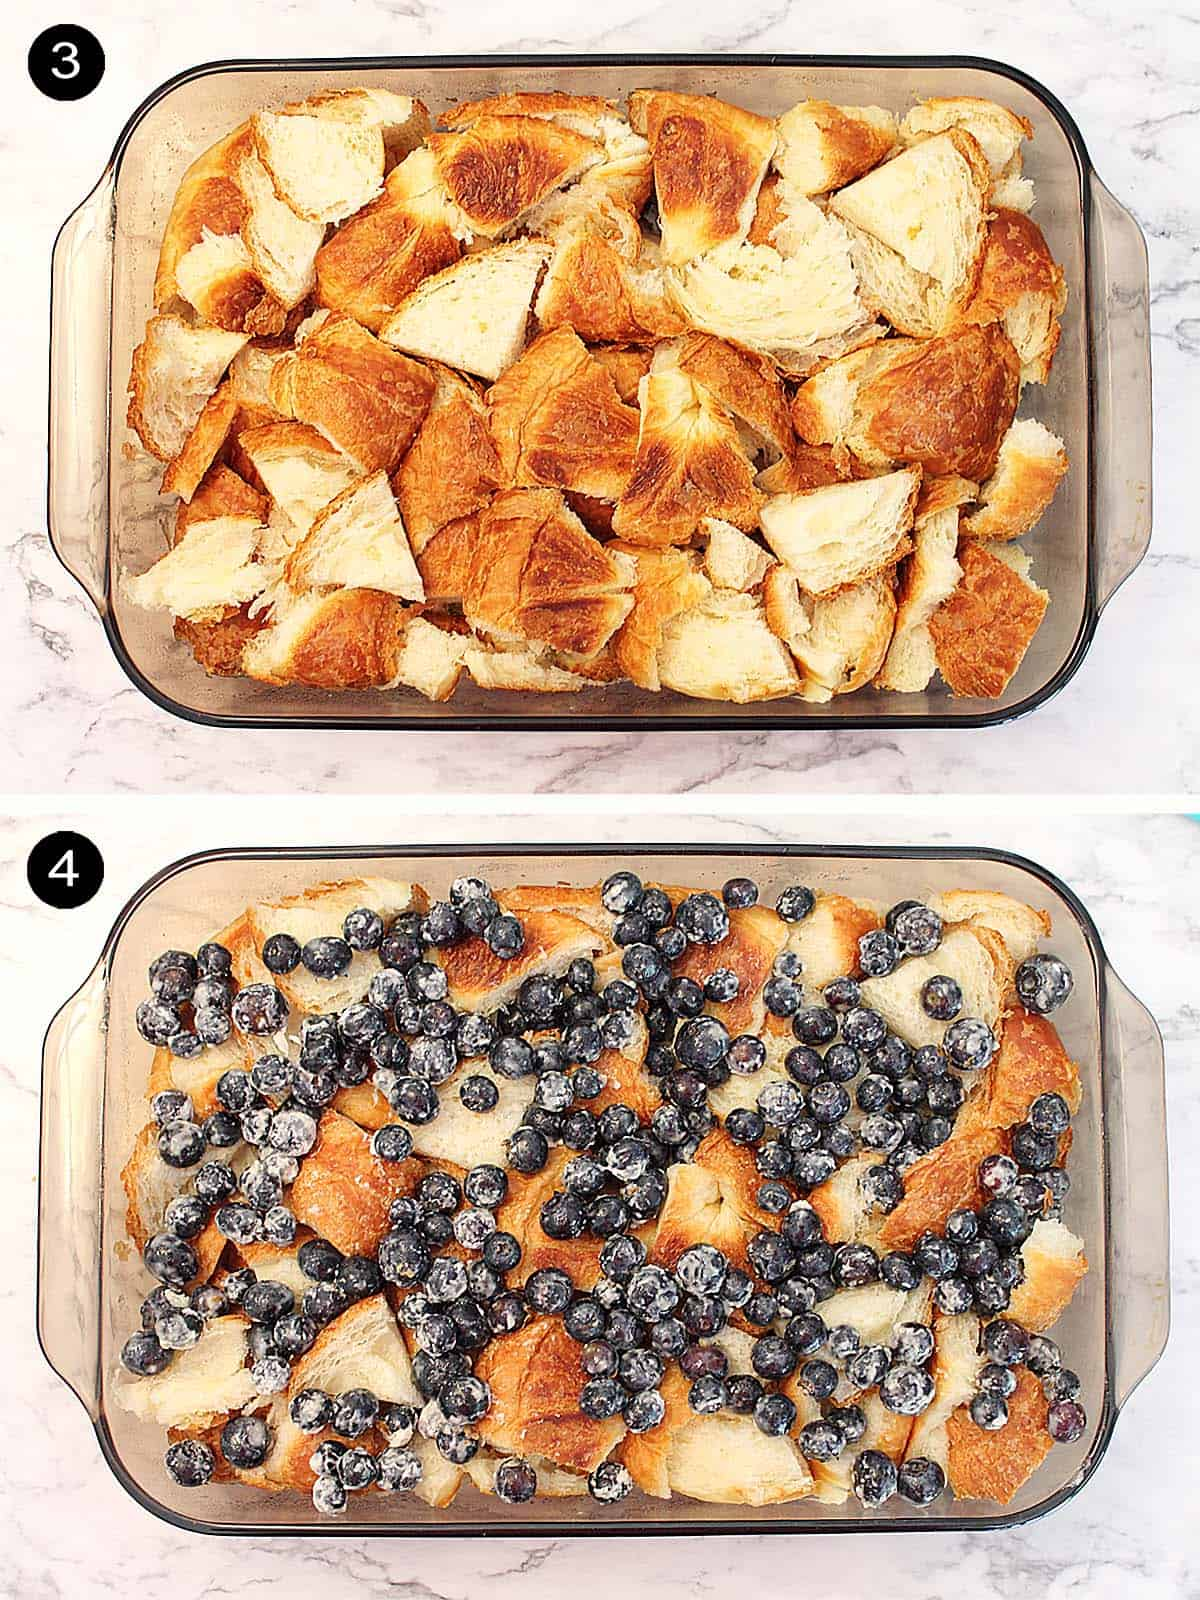 Layering croissants and blueberries into casserole dish.